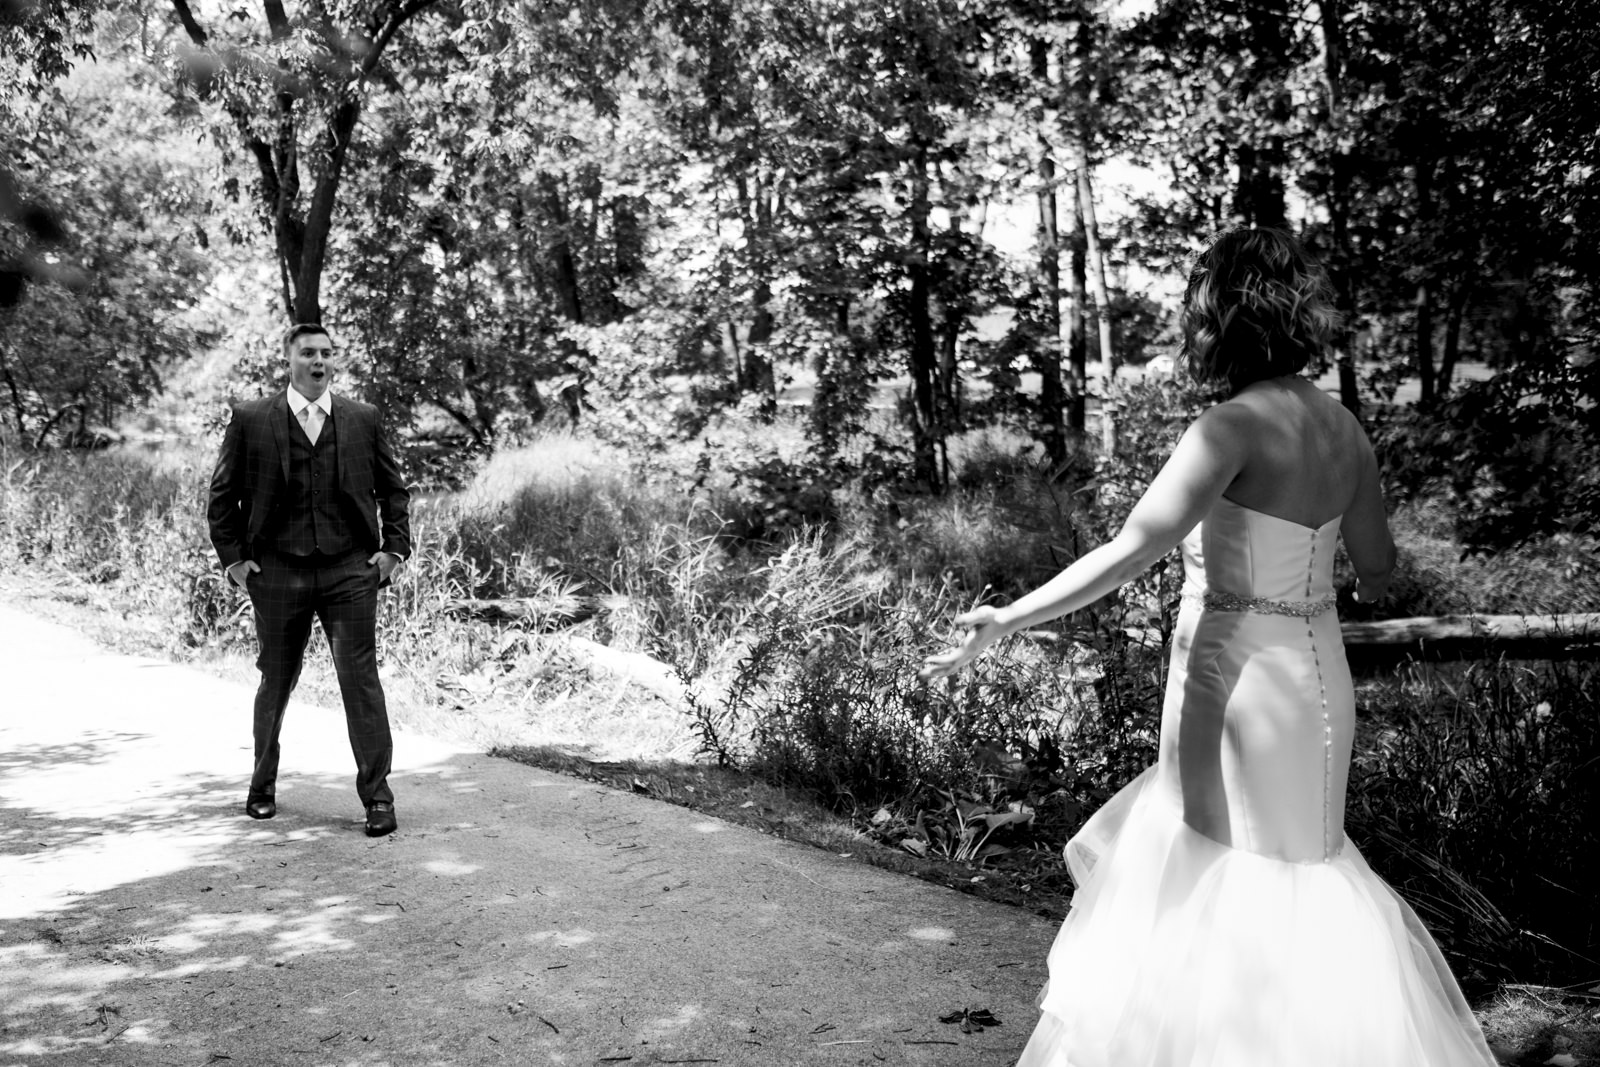 Groom's sweet reaction to seeing his bride for the first time on their wedding day.